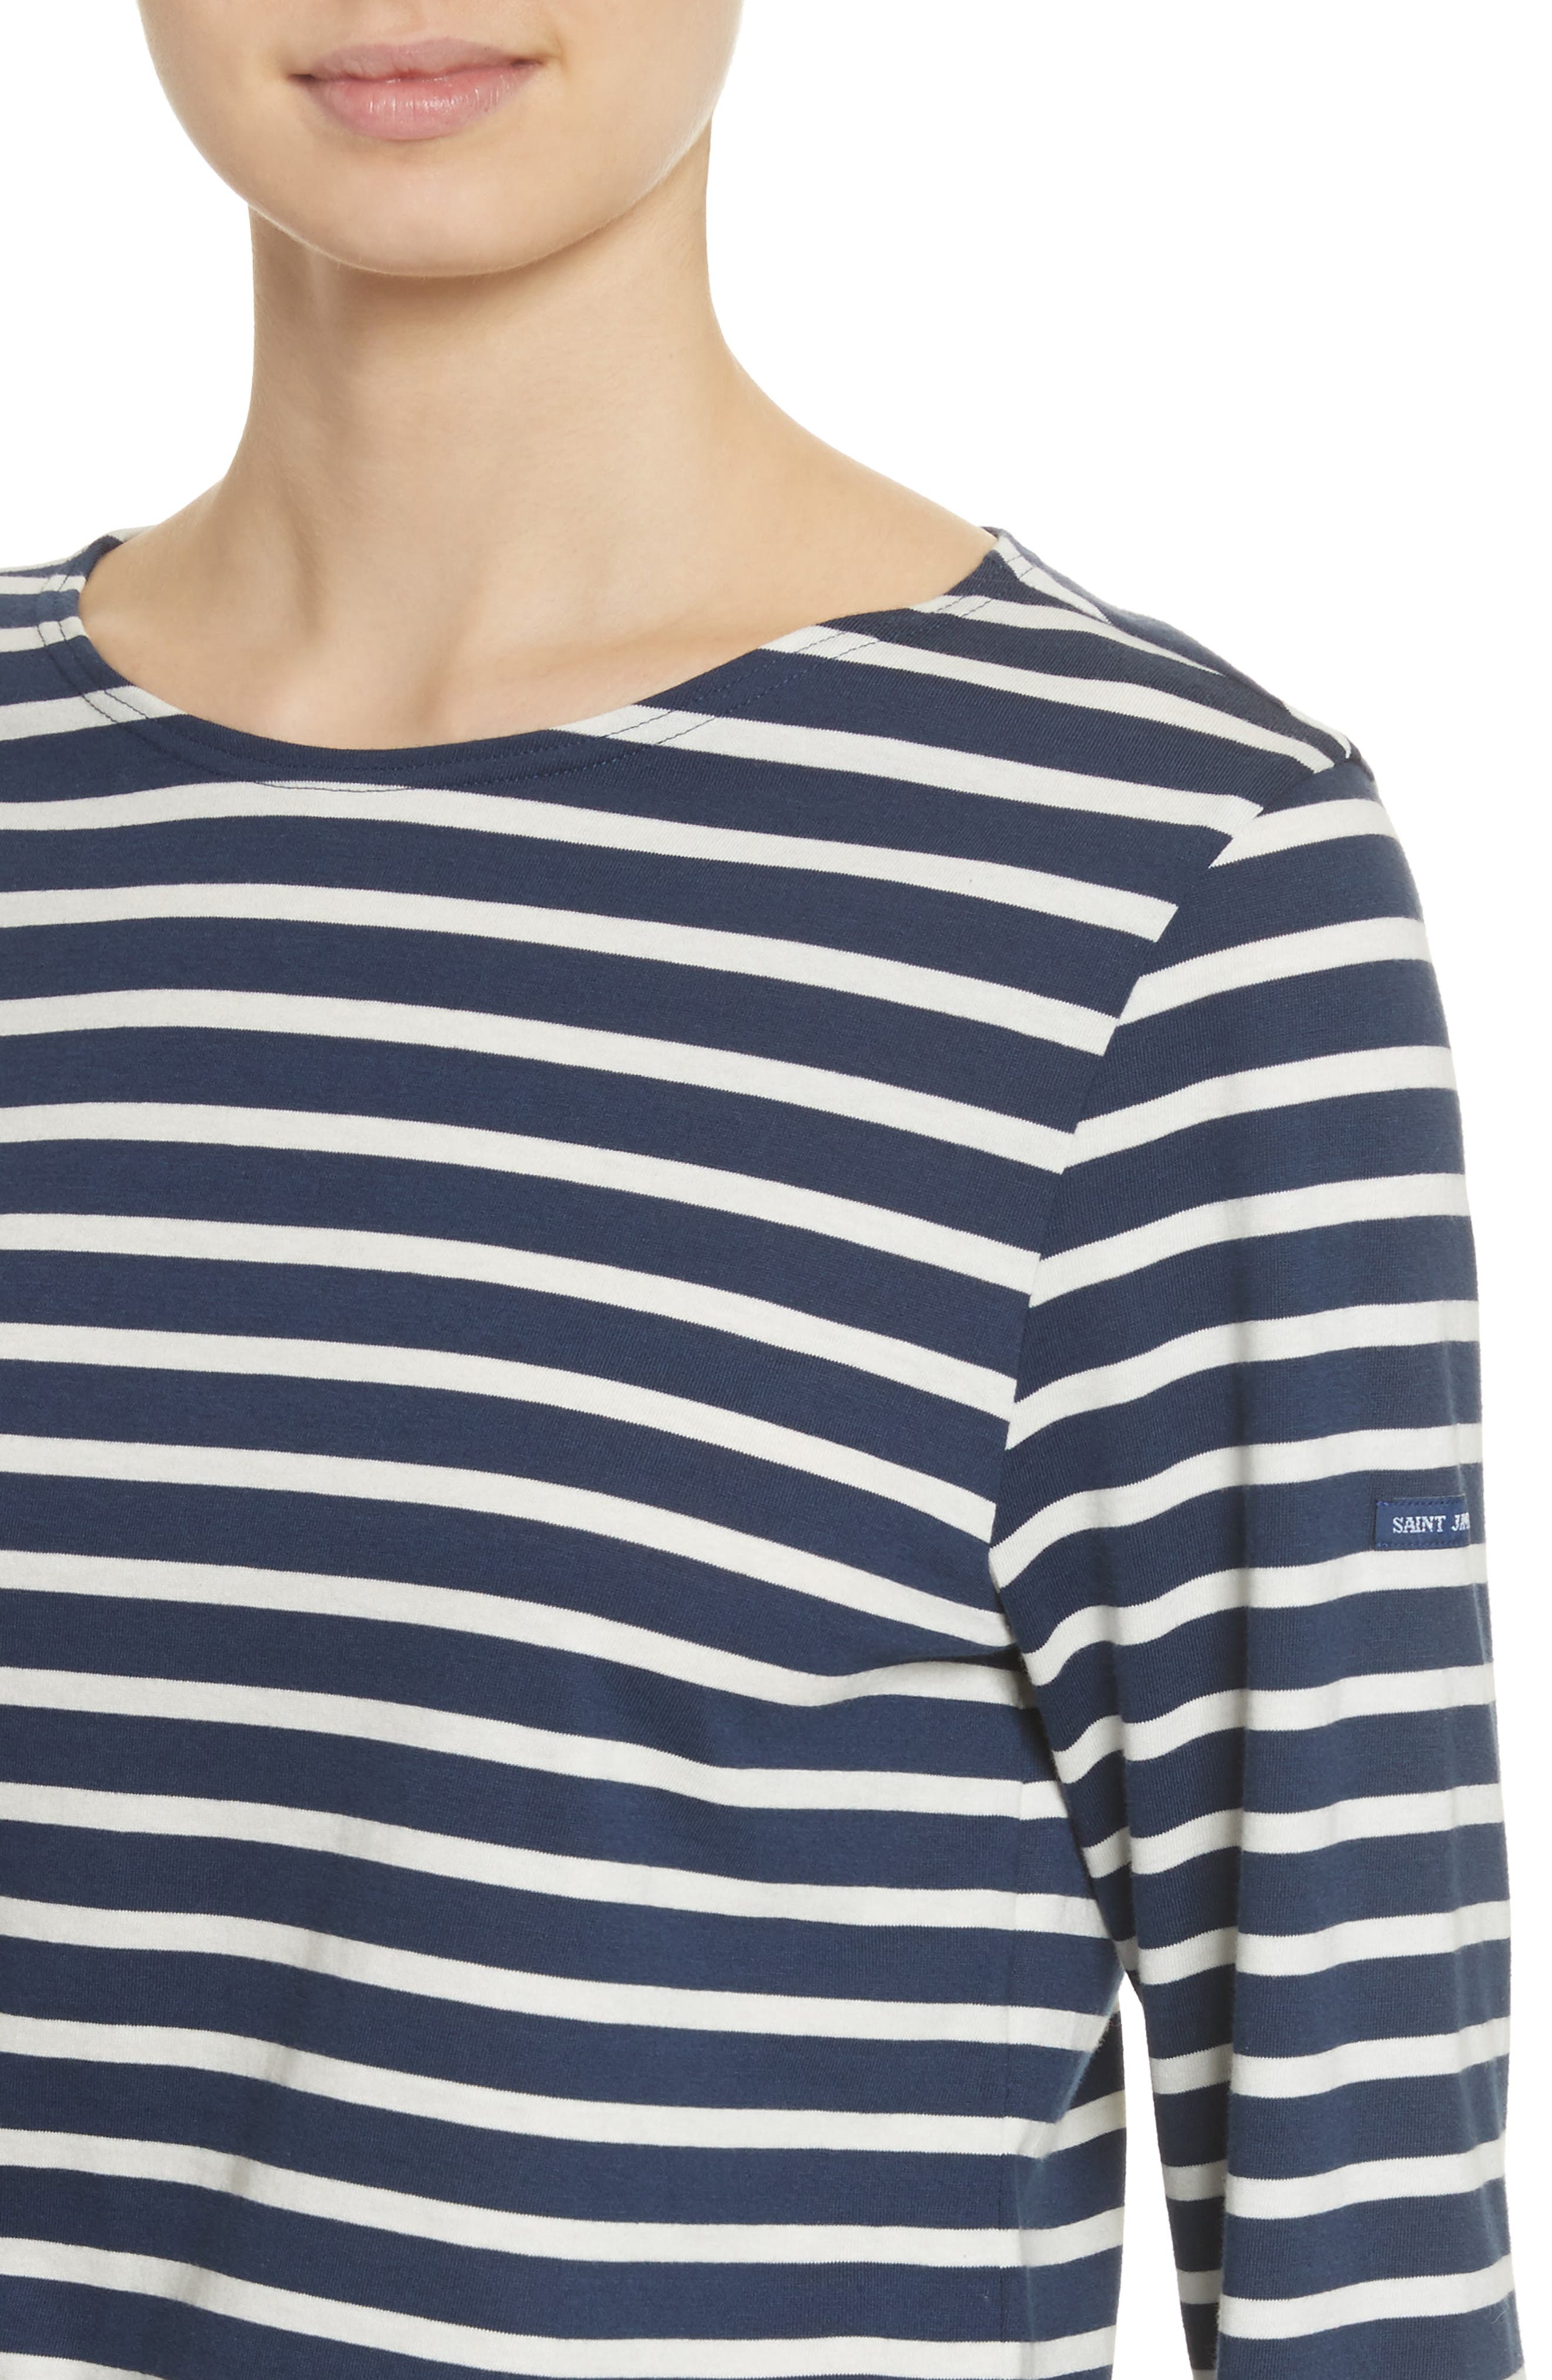 Alternate Image 5  - Saint James Minquiers Moderne Striped Sailor Shirt (Unisex)